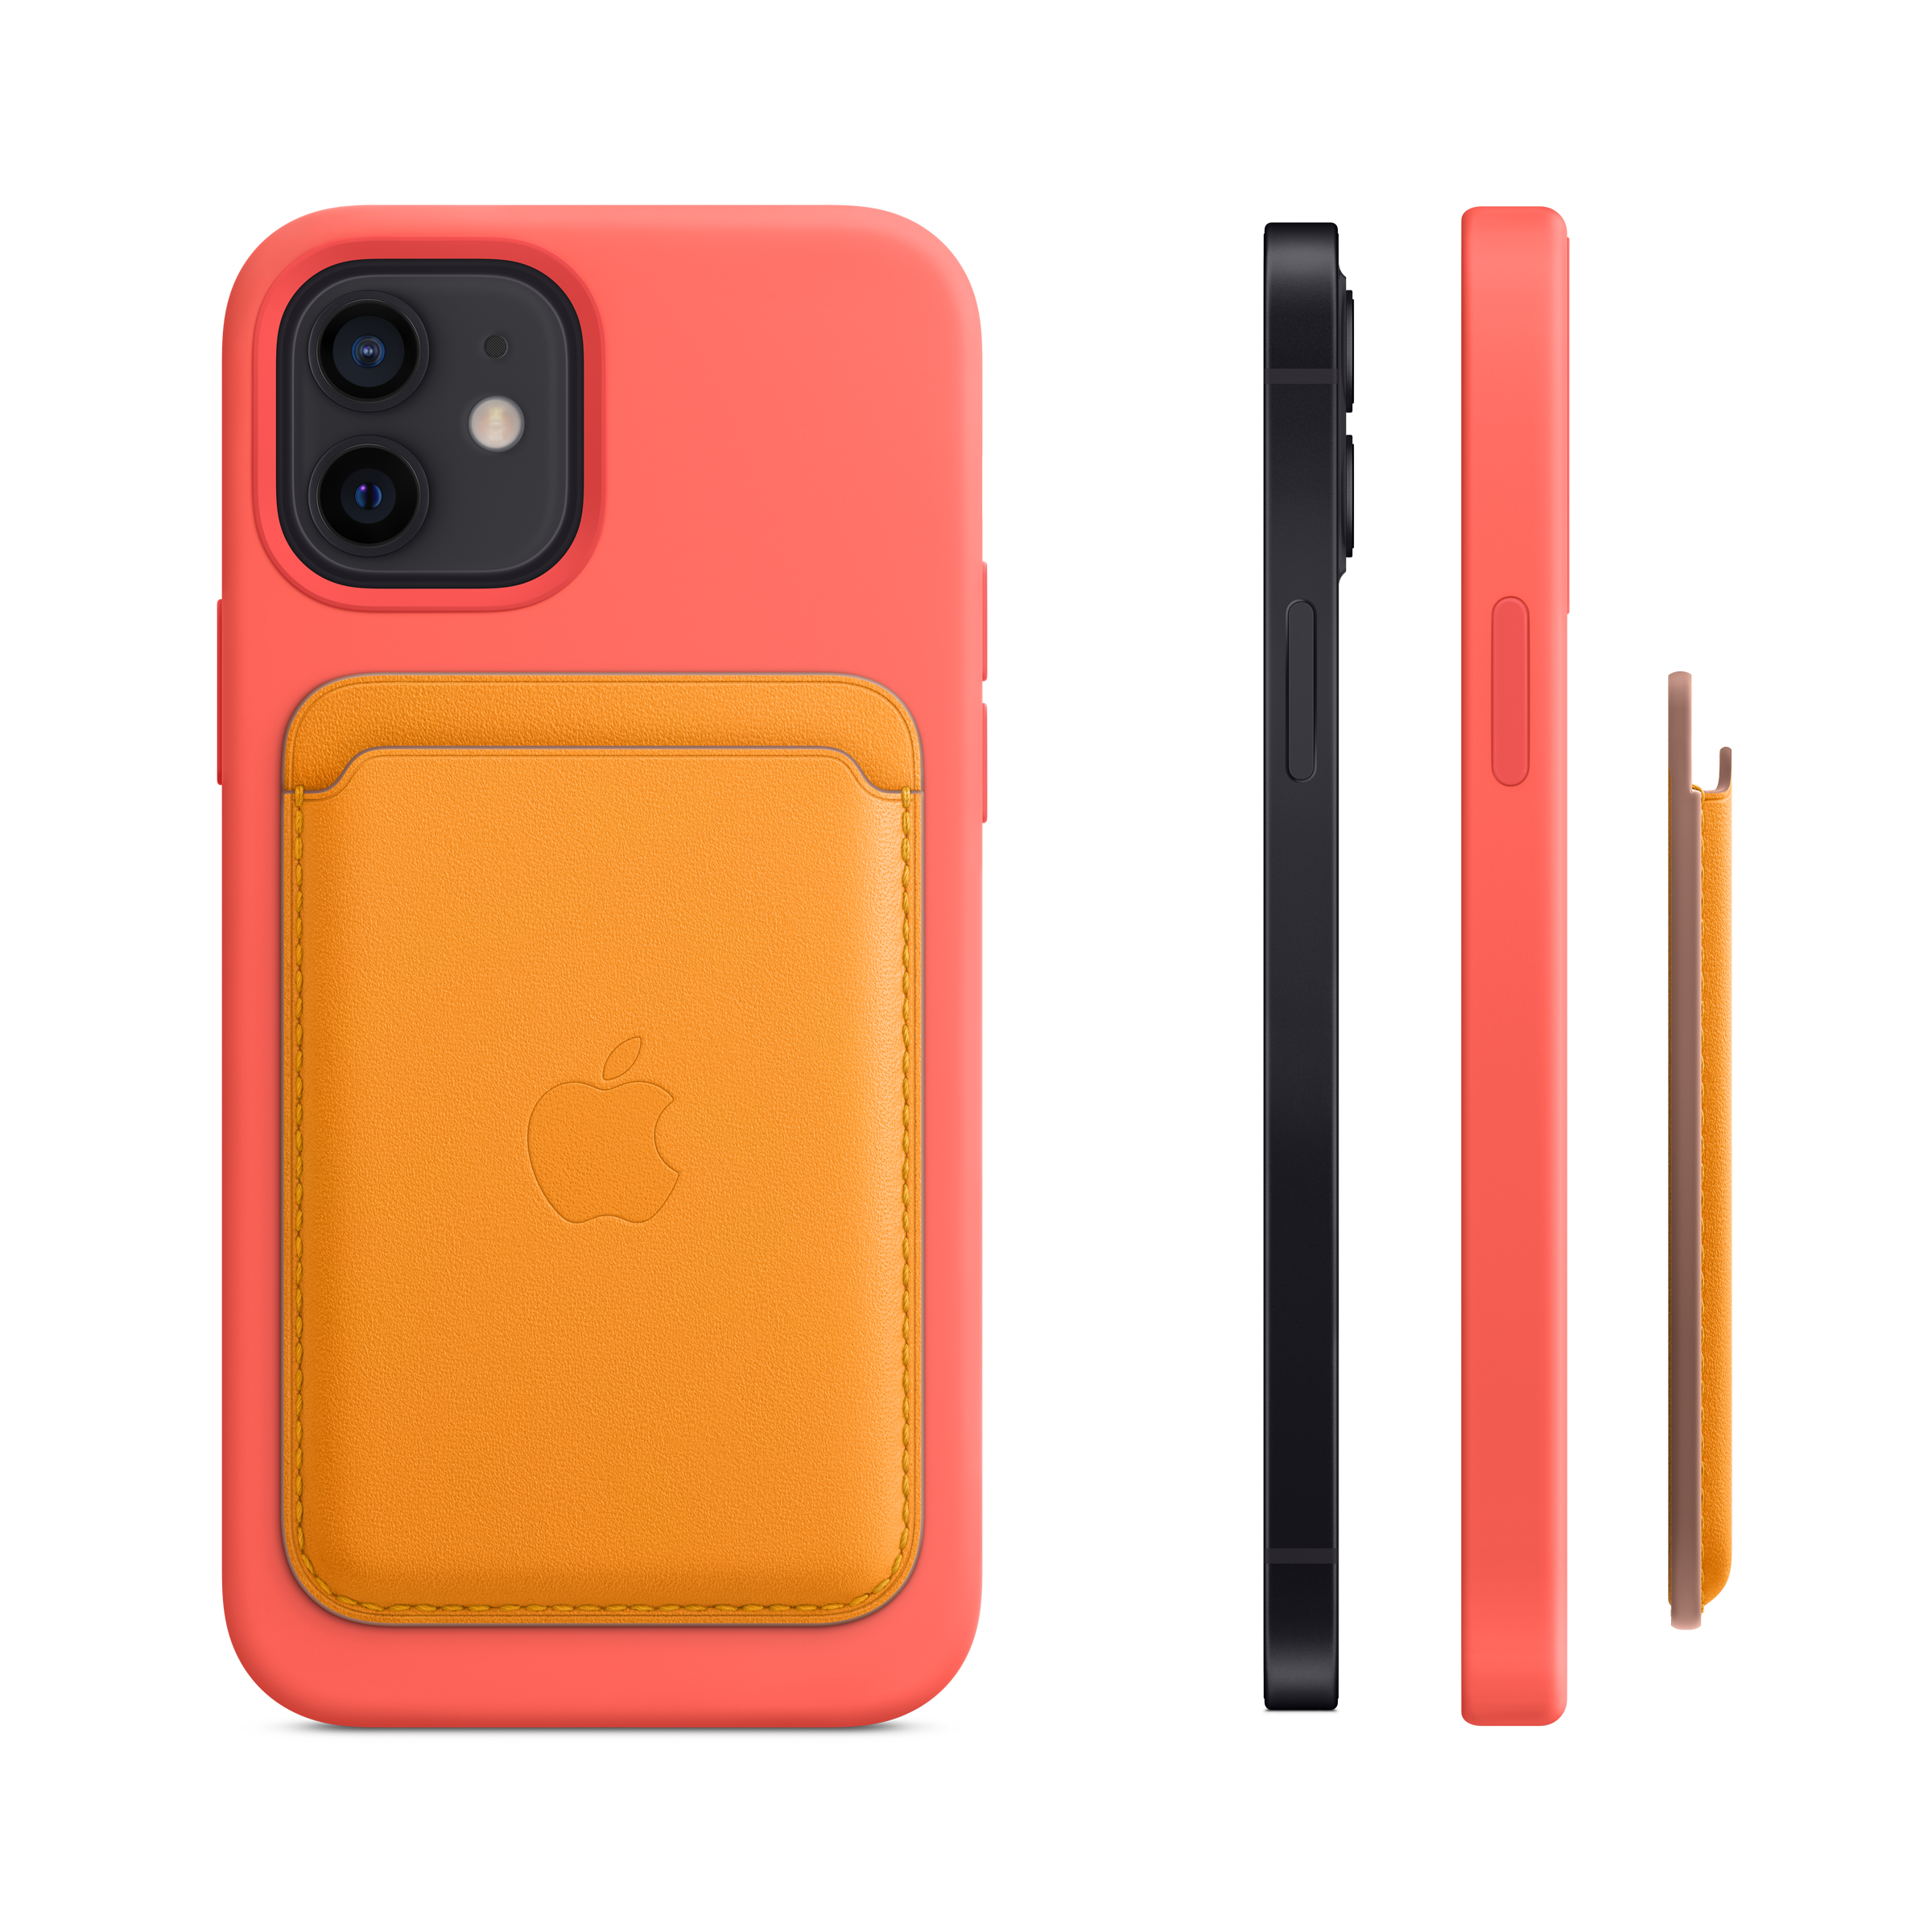 GEO-iPhone12-MagSafe-coral-accessories